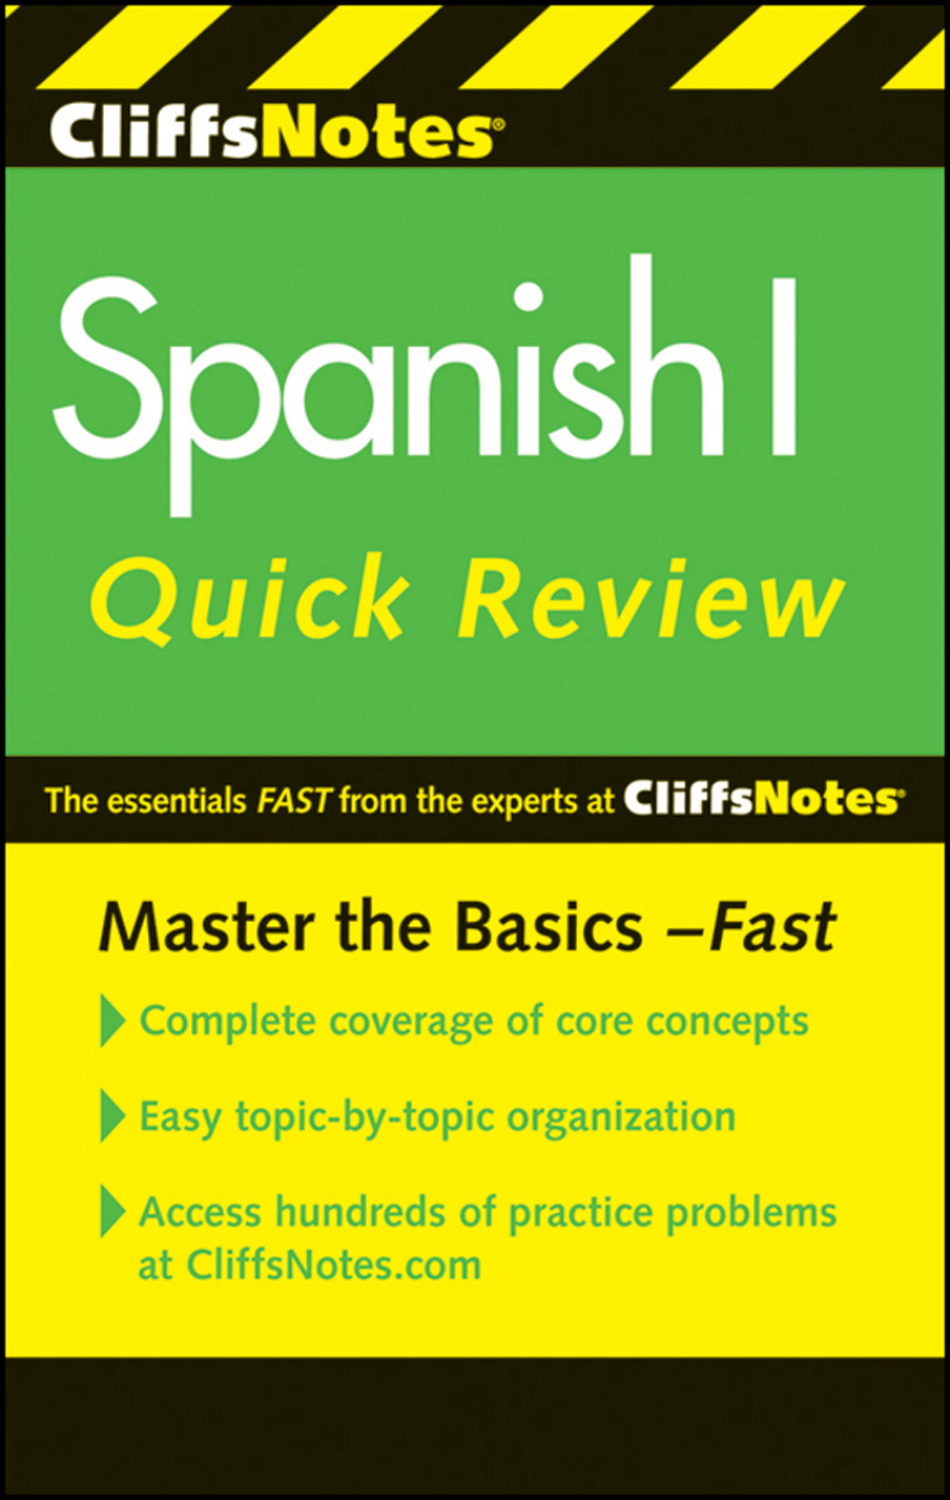 CliffsNotes Spanish I Quick Review, 2nd Edition-9780470878750